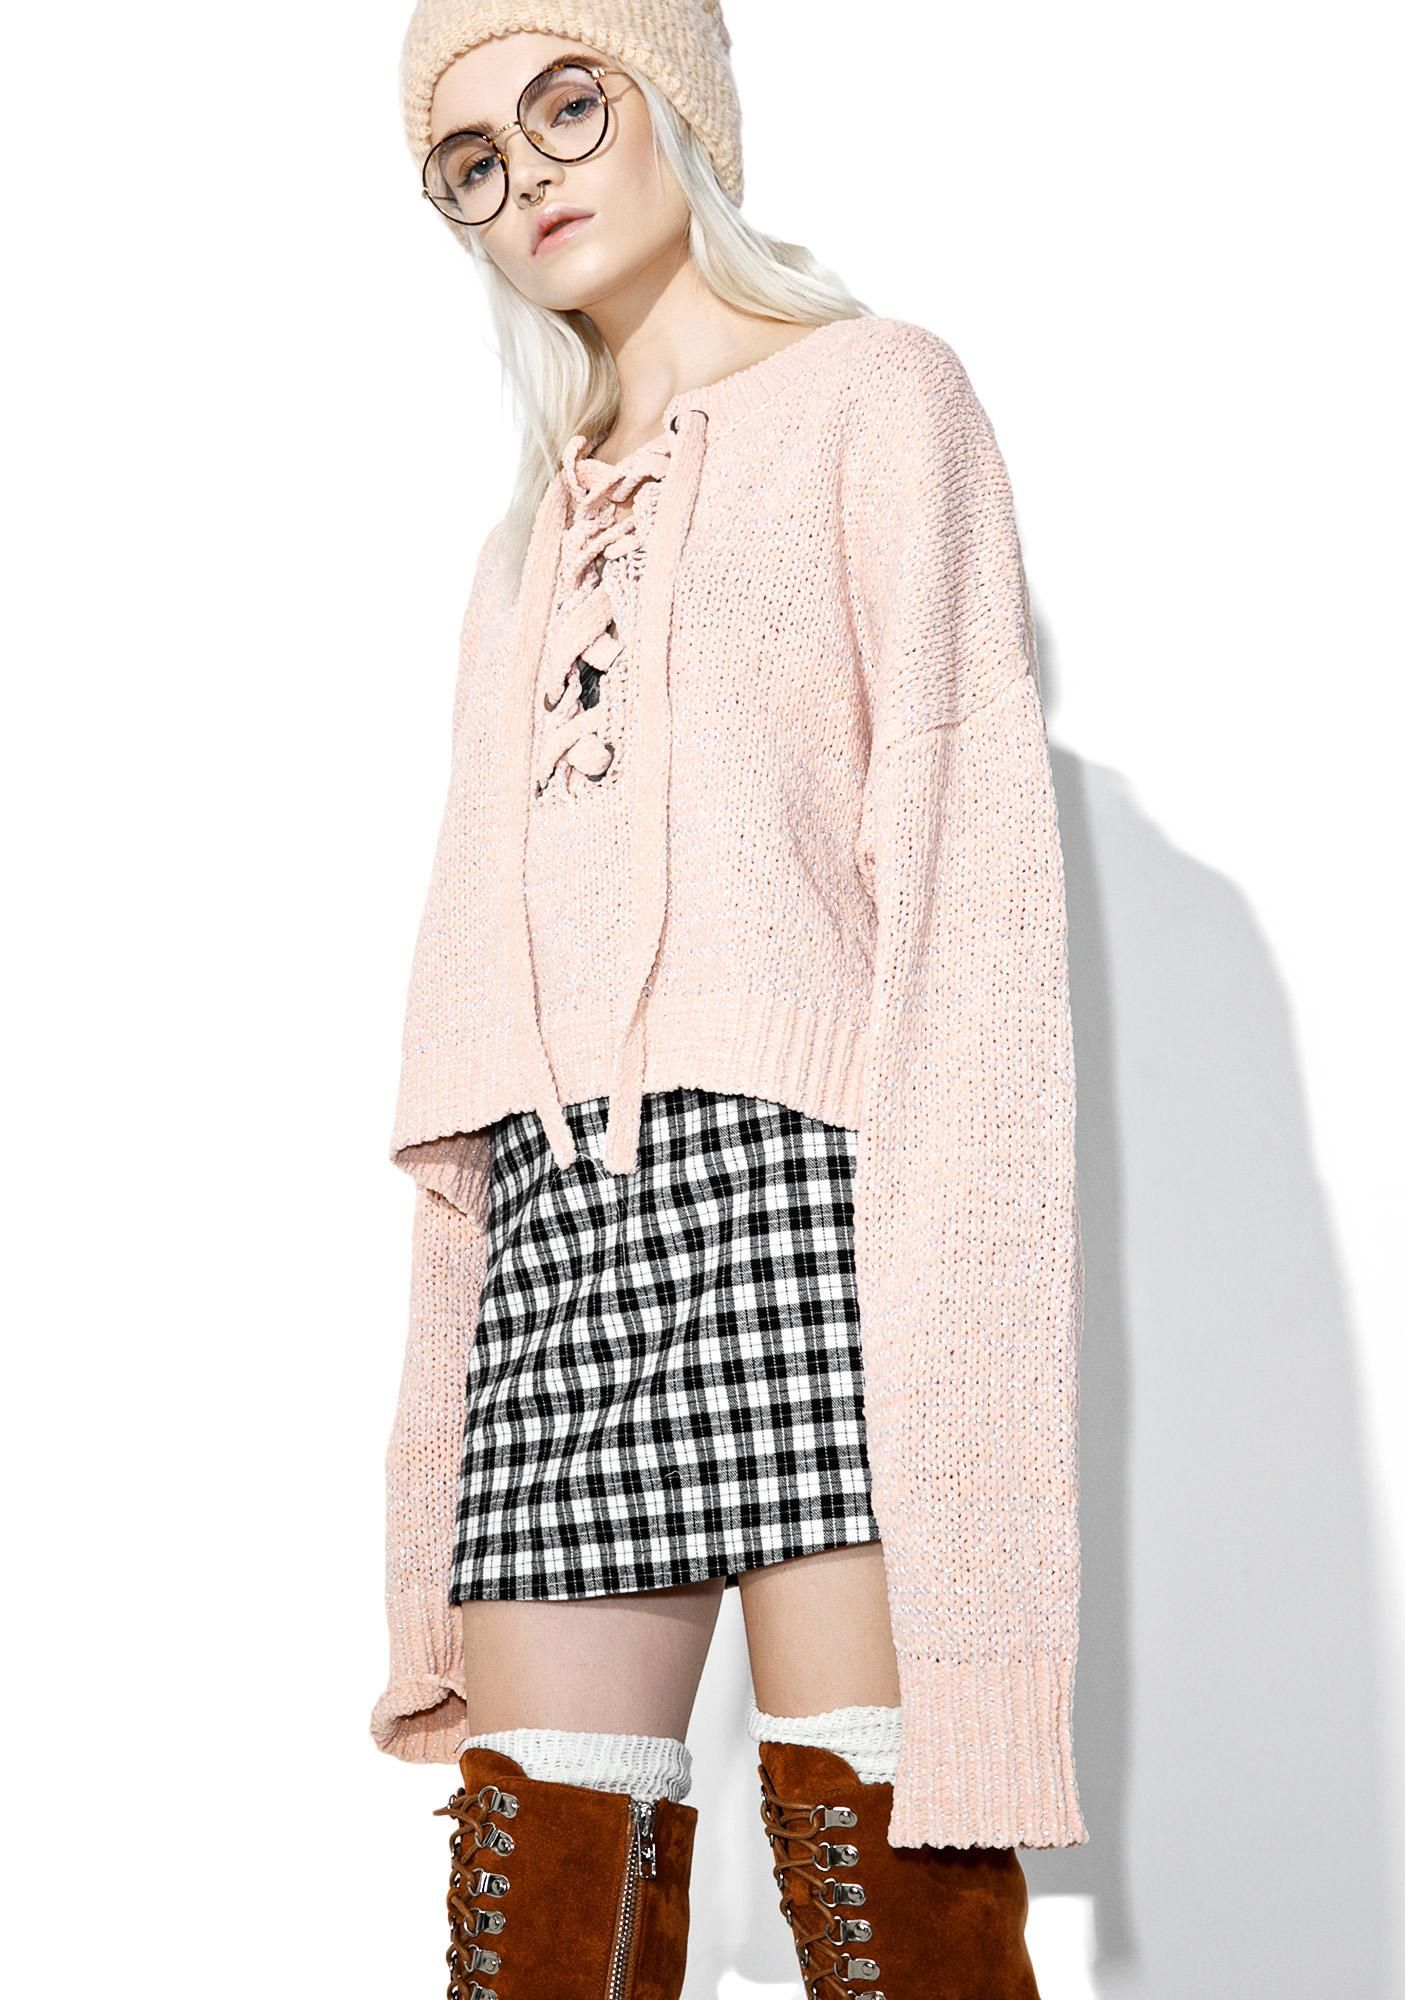 Oh gee laceup sweater streetwear clothing boy london and wildfox